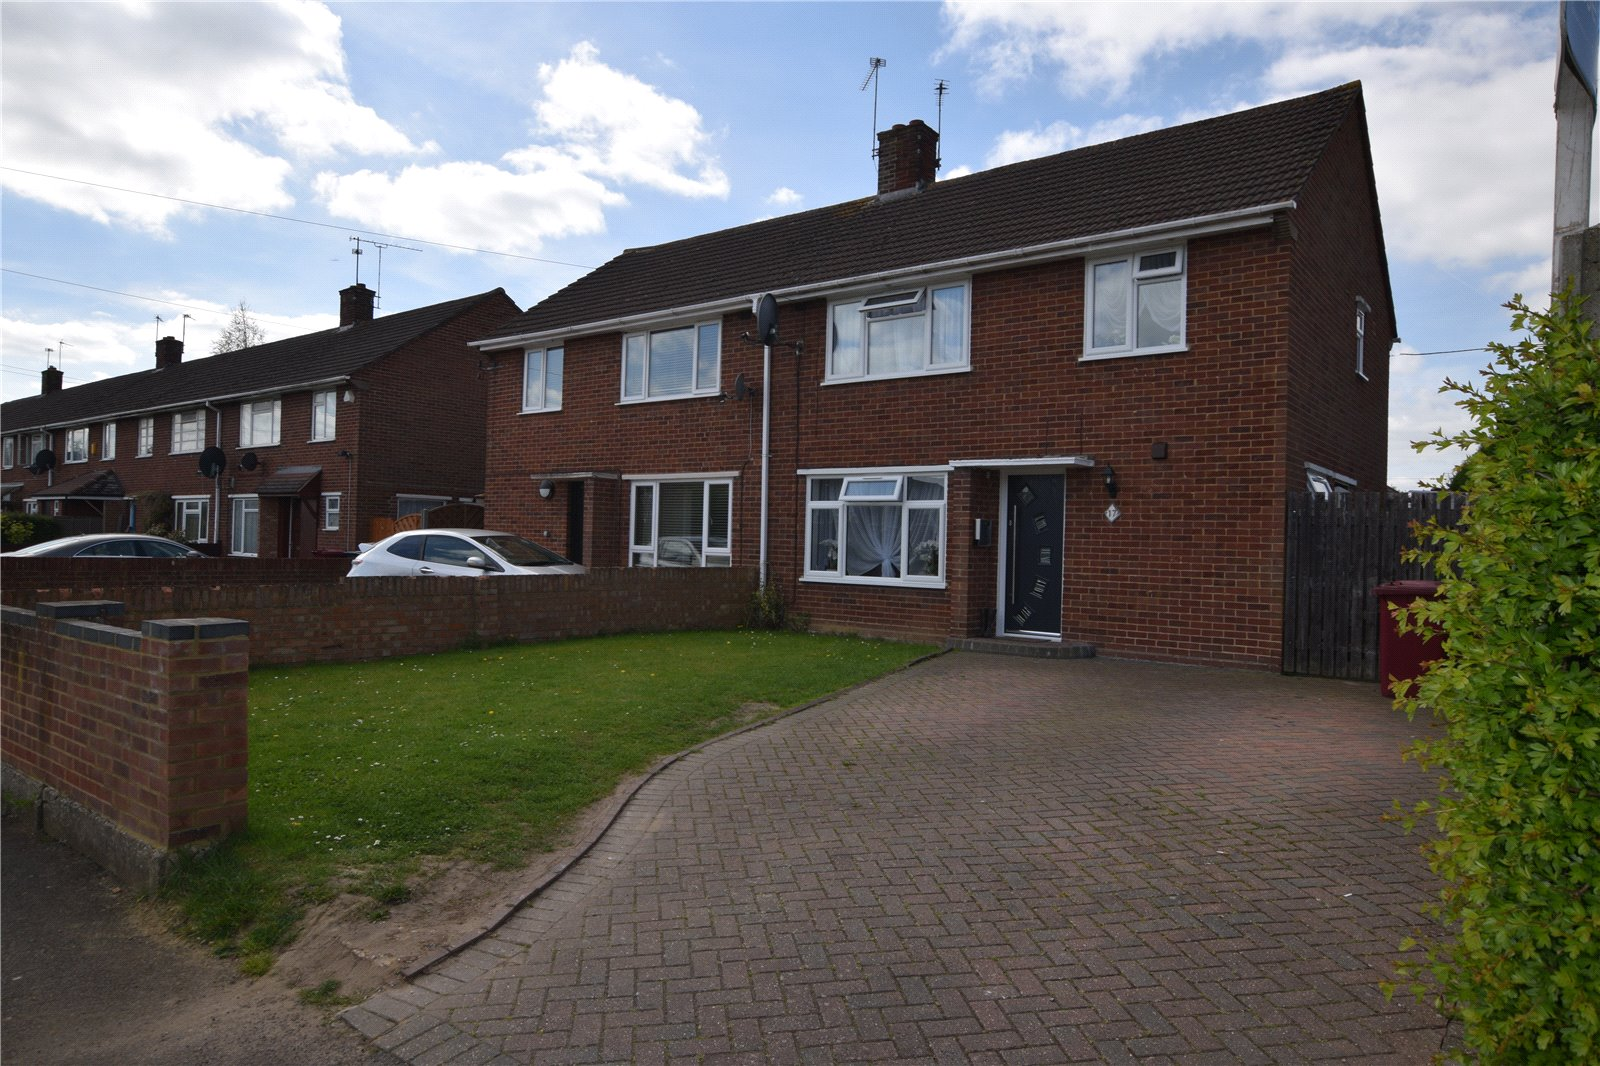 3 Bedrooms Semi Detached House for sale in Gainsborough Road, Reading, Berkshire, RG30